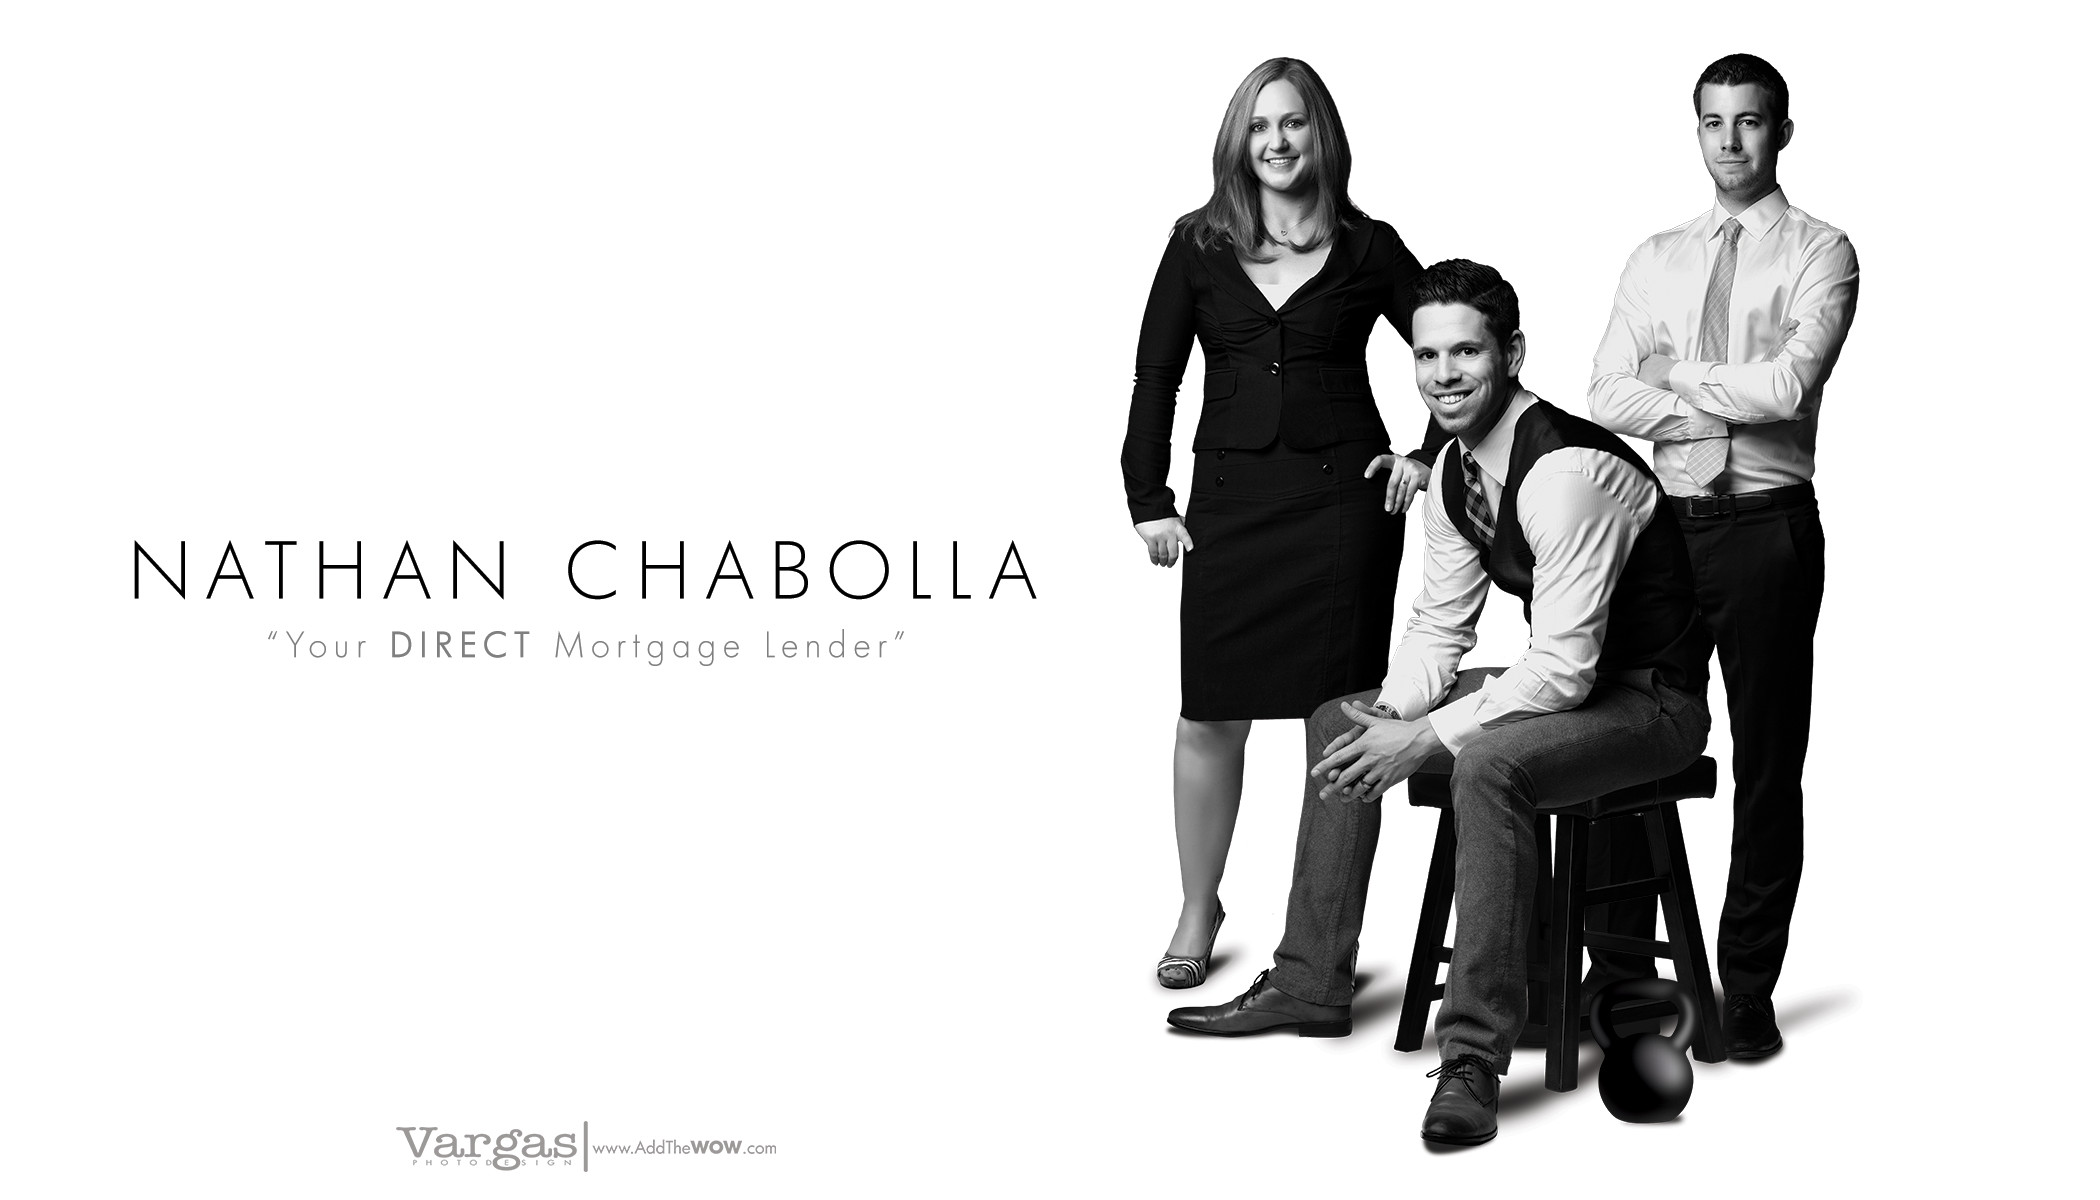 Nathan-Chabolla-Mortgage-Lender-Team-Photo-Branding.png